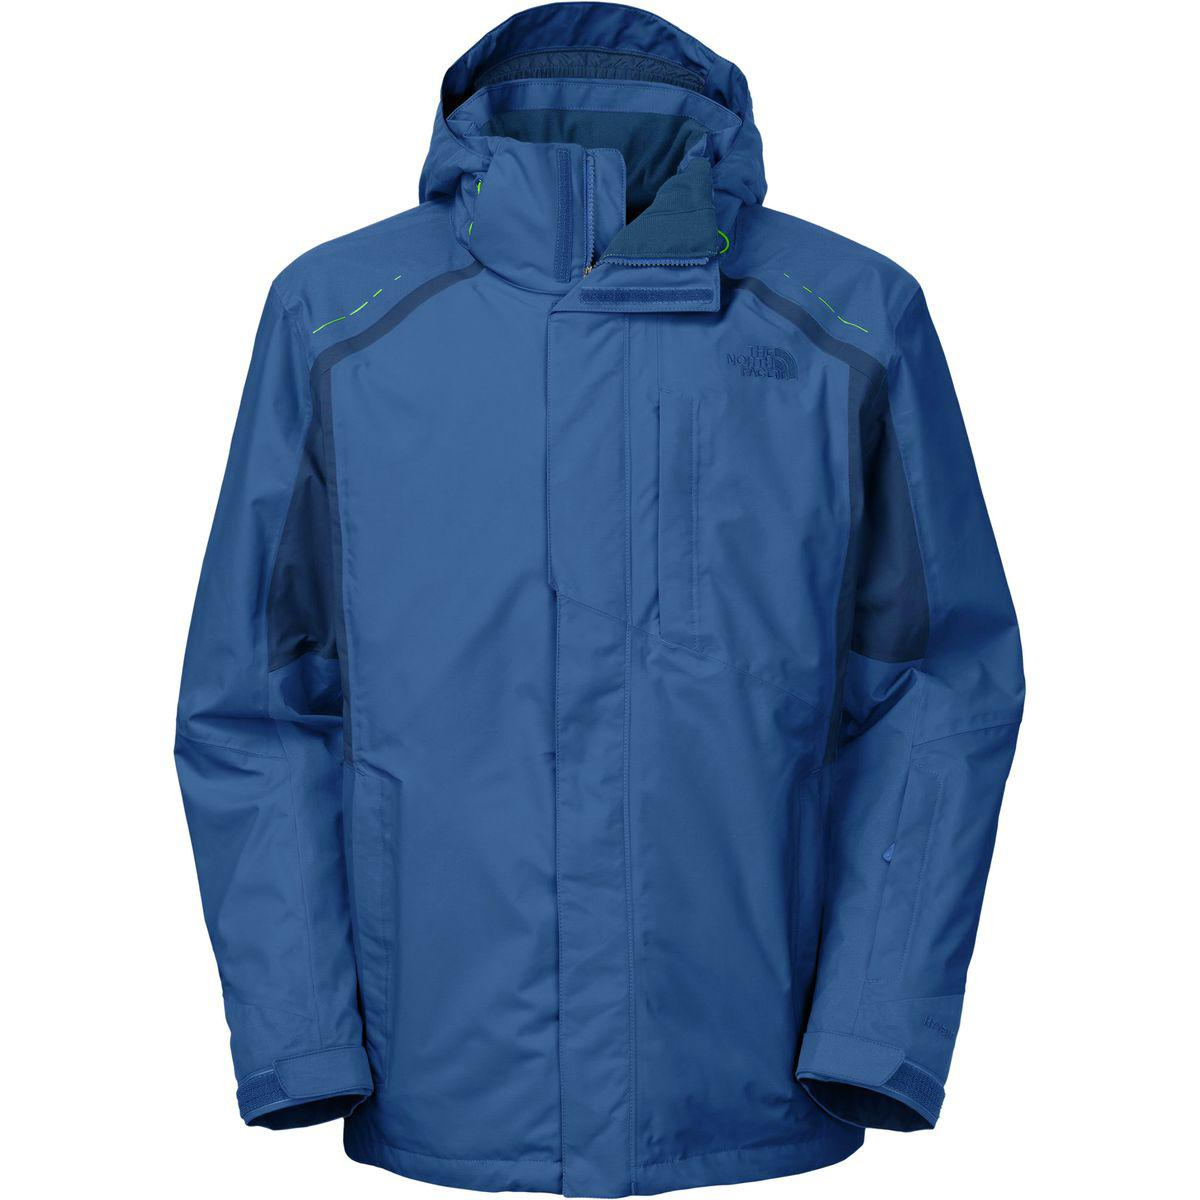 bcd347996 The North Face Vortex Triclimate Jacket in Blue for Men - Lyst